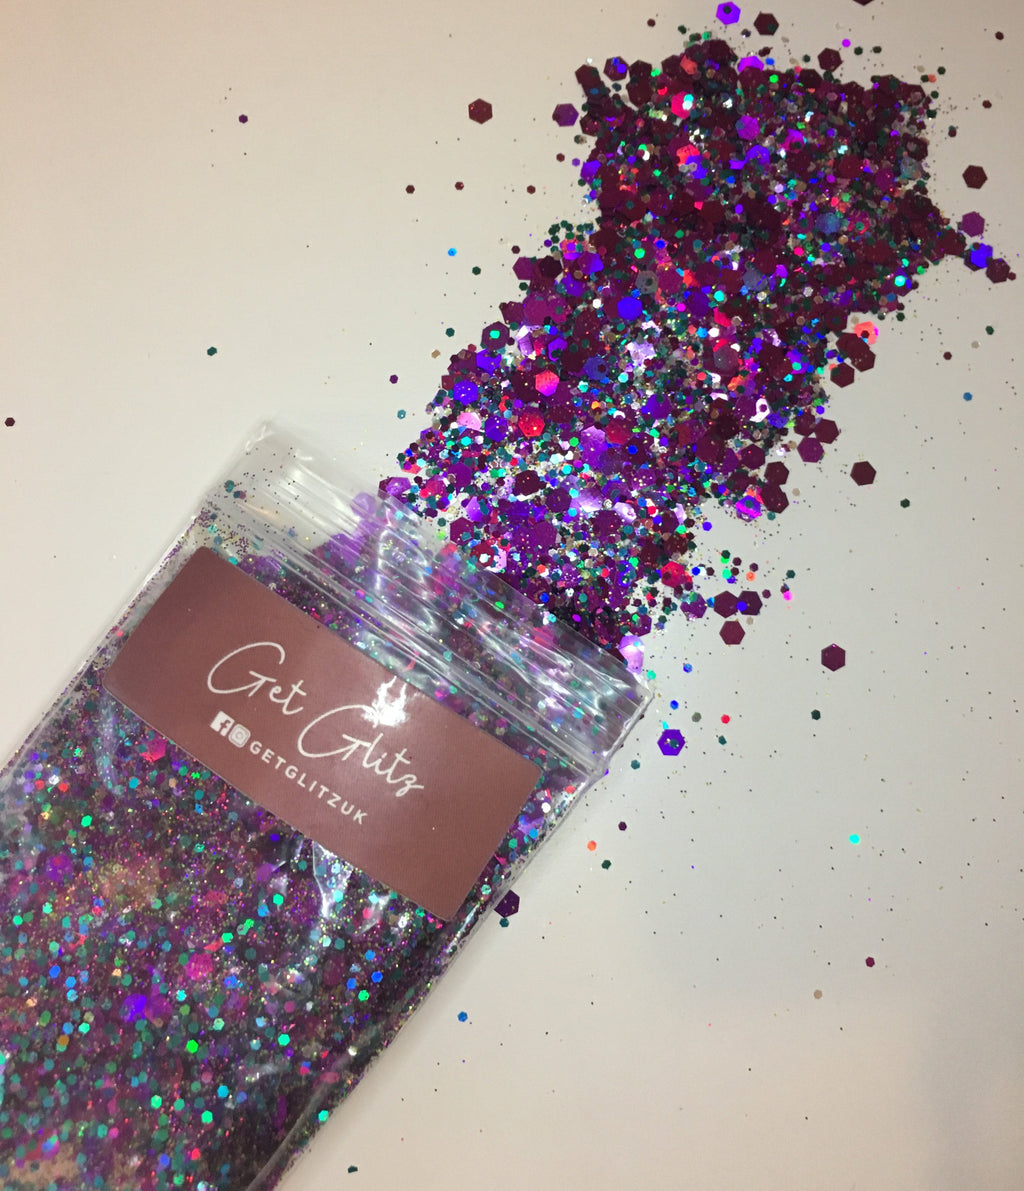 Purple Daze - Chunky Glitter UK